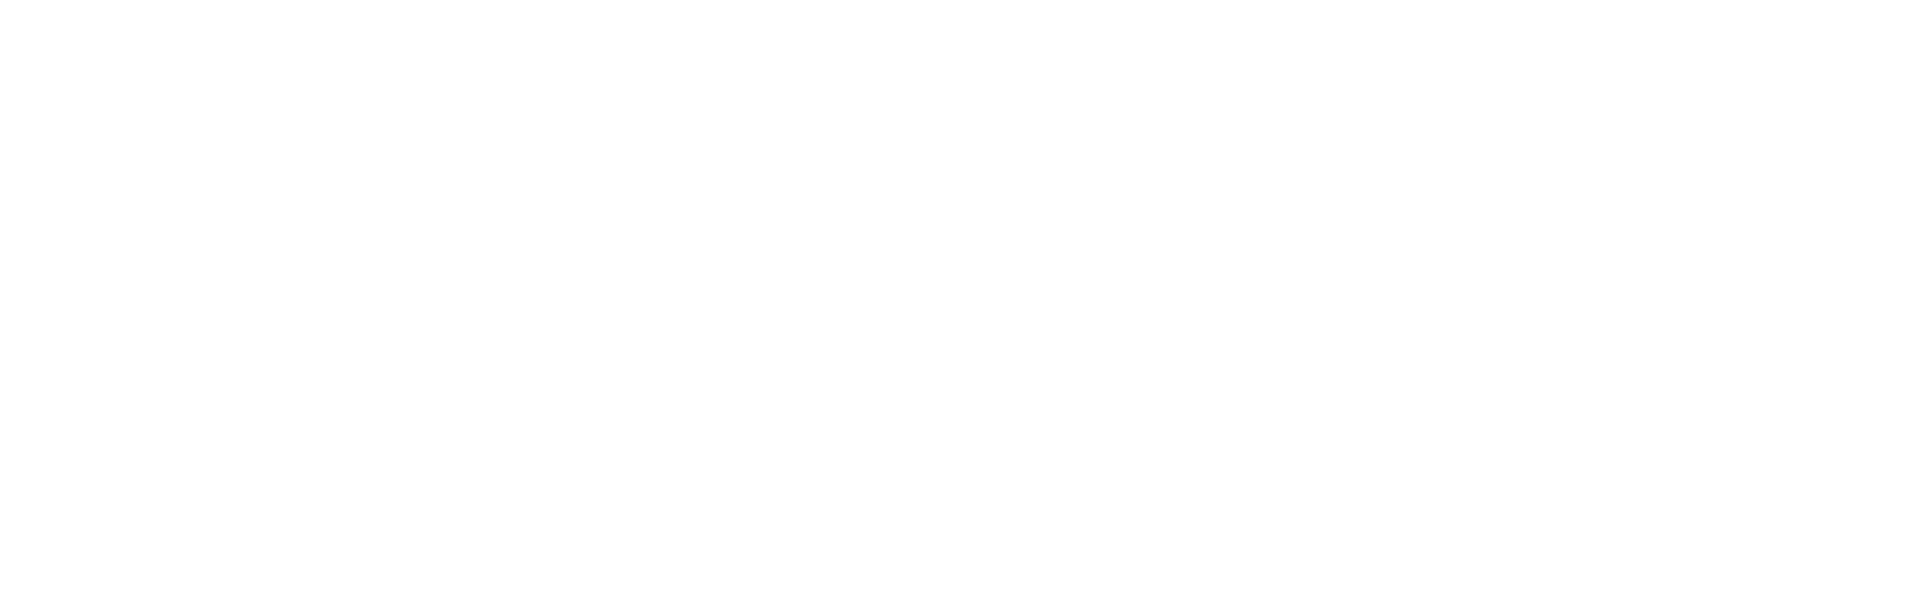 Made in America. Raised in the South.